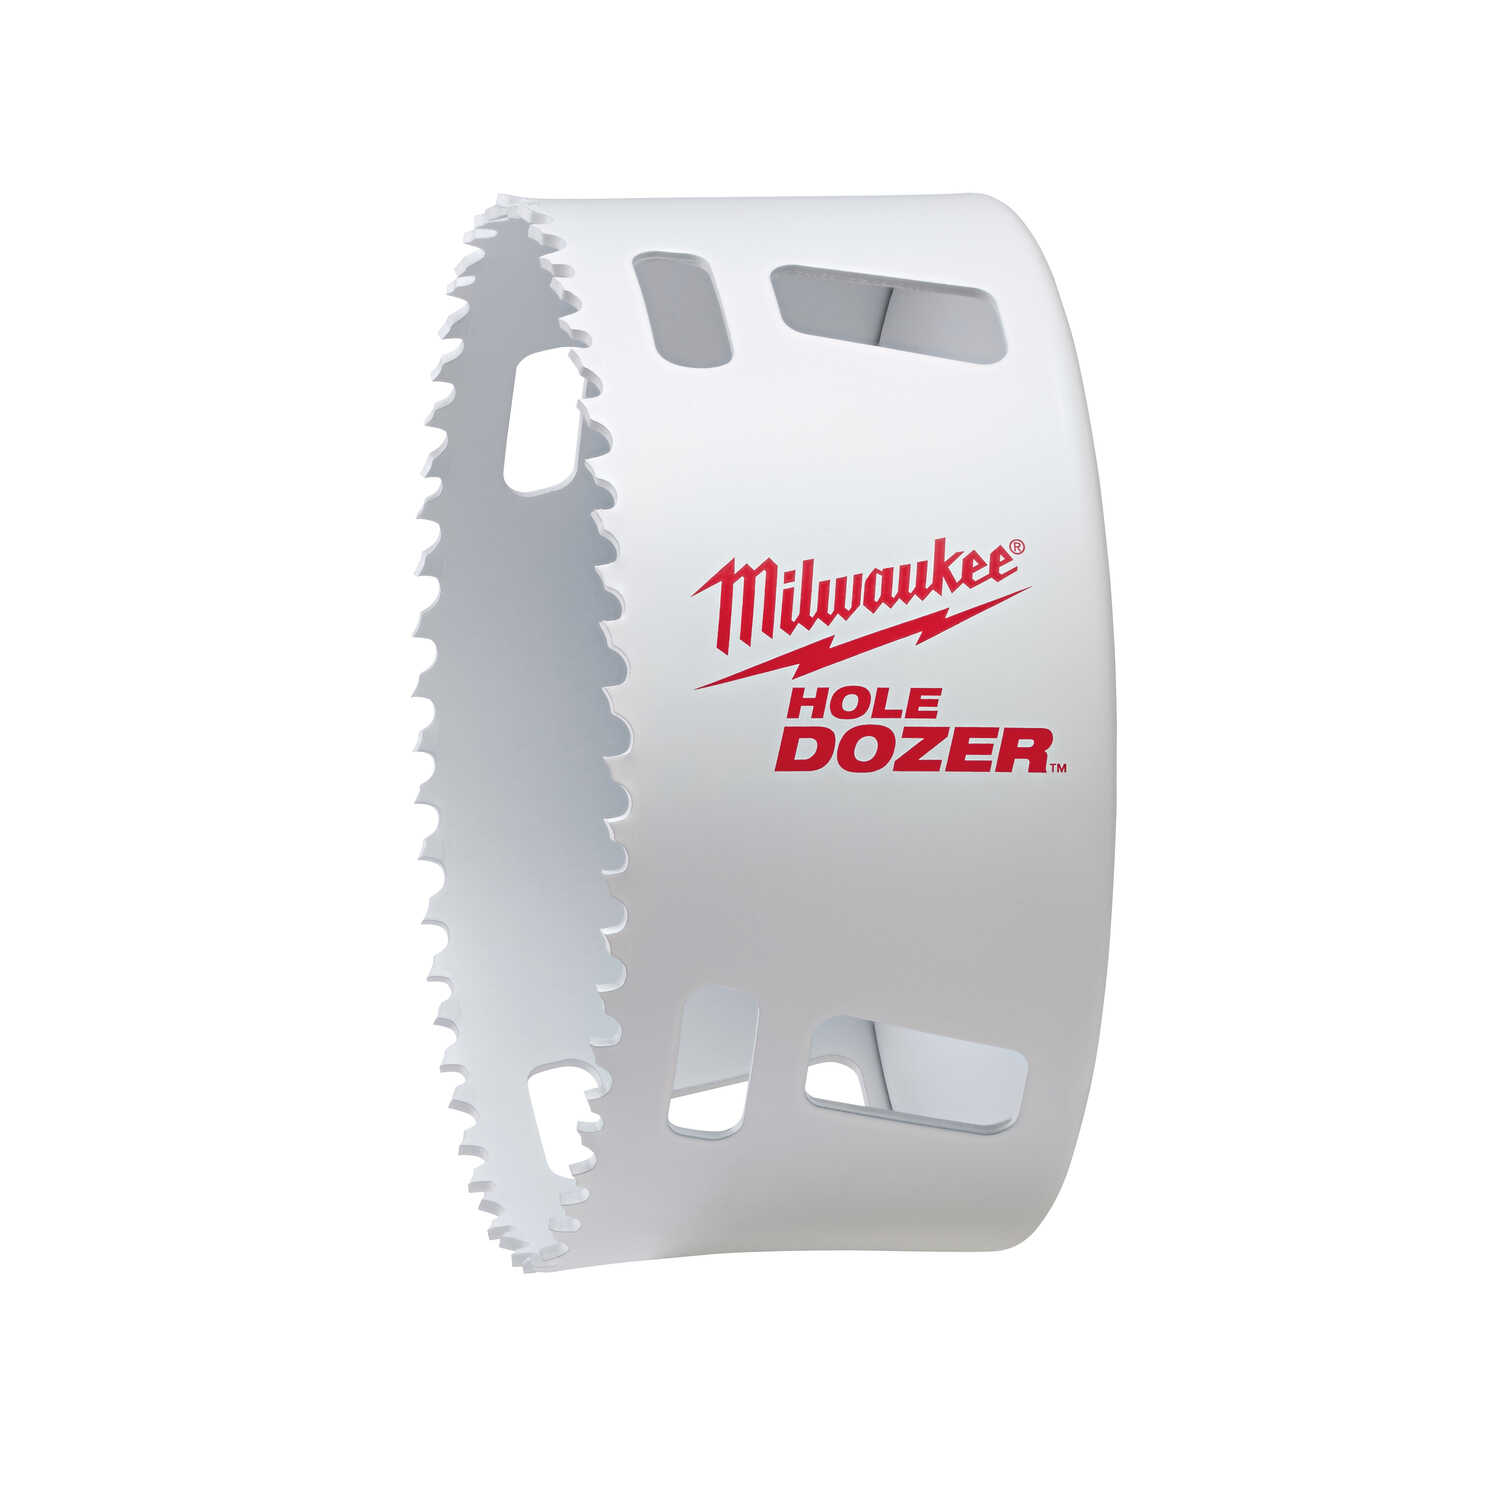 Milwaukee  Hole Dozer  4-3/4 in. Dia. x 2.6 in. L Bi-Metal  Hole Saw  1/4 in. 1 pc.